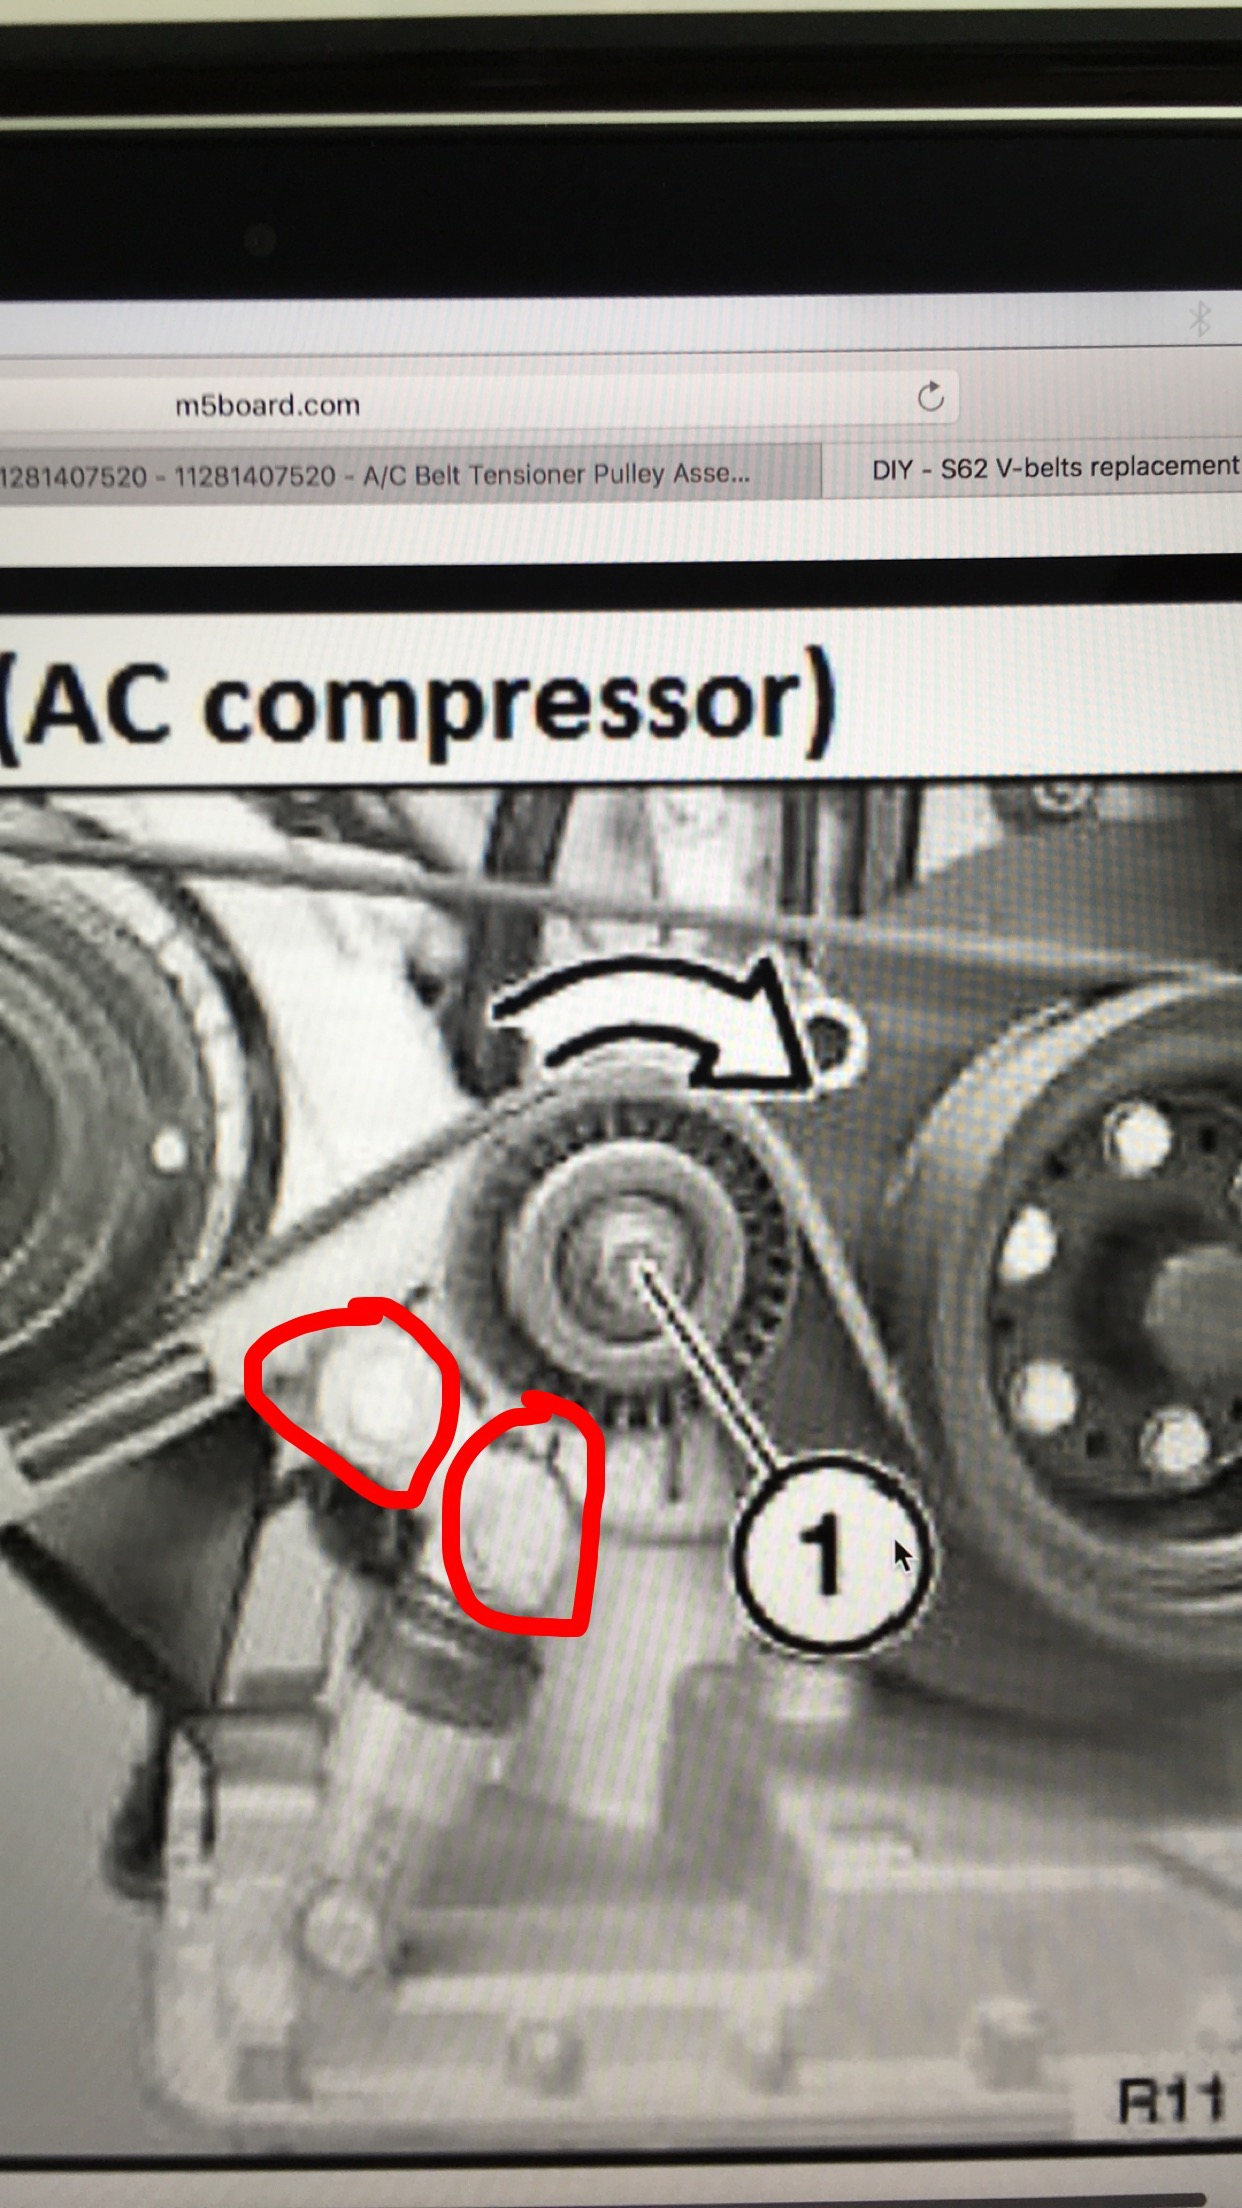 Maxresdefault additionally Zbd Ag as well Pic moreover Hqdefault additionally Hqdefault. on bmw belt tensioner replacement